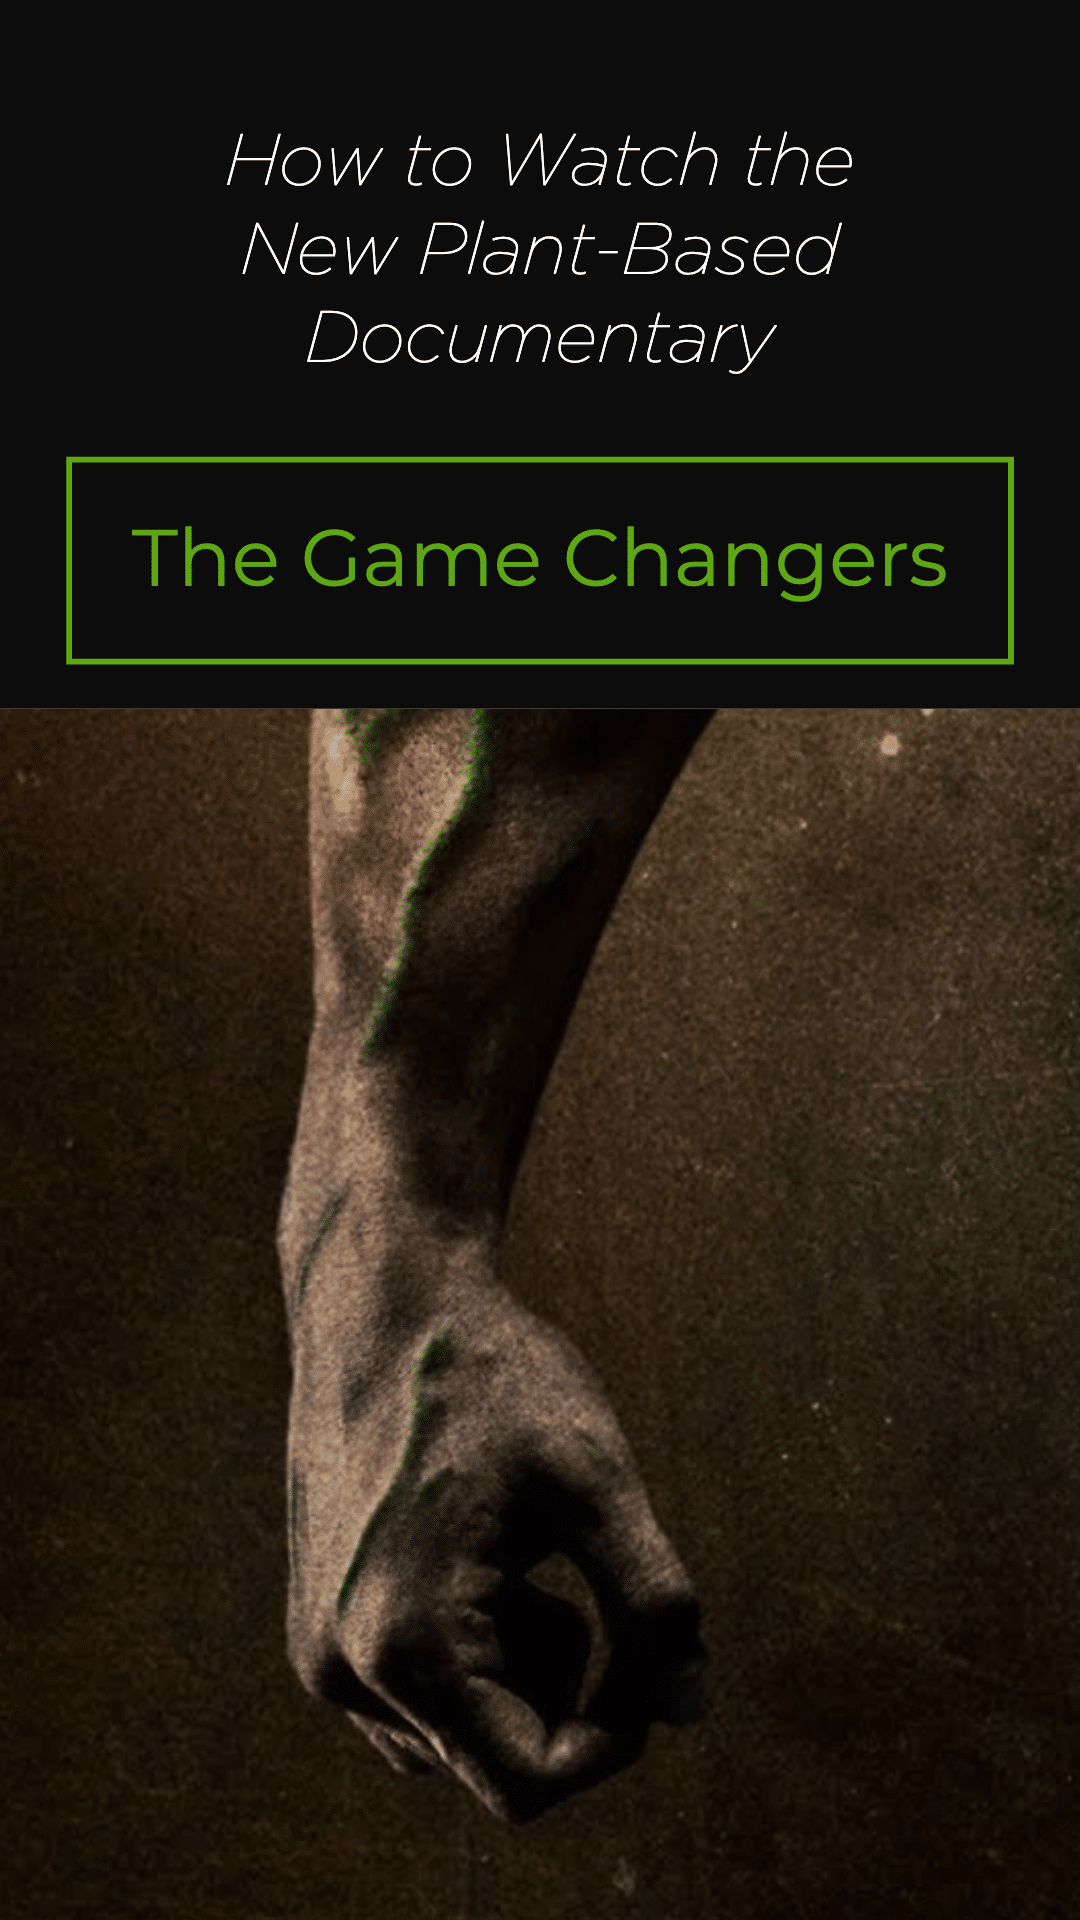 New Plant-Based Documentary The Game Changers Is Now Streaming on Netflix